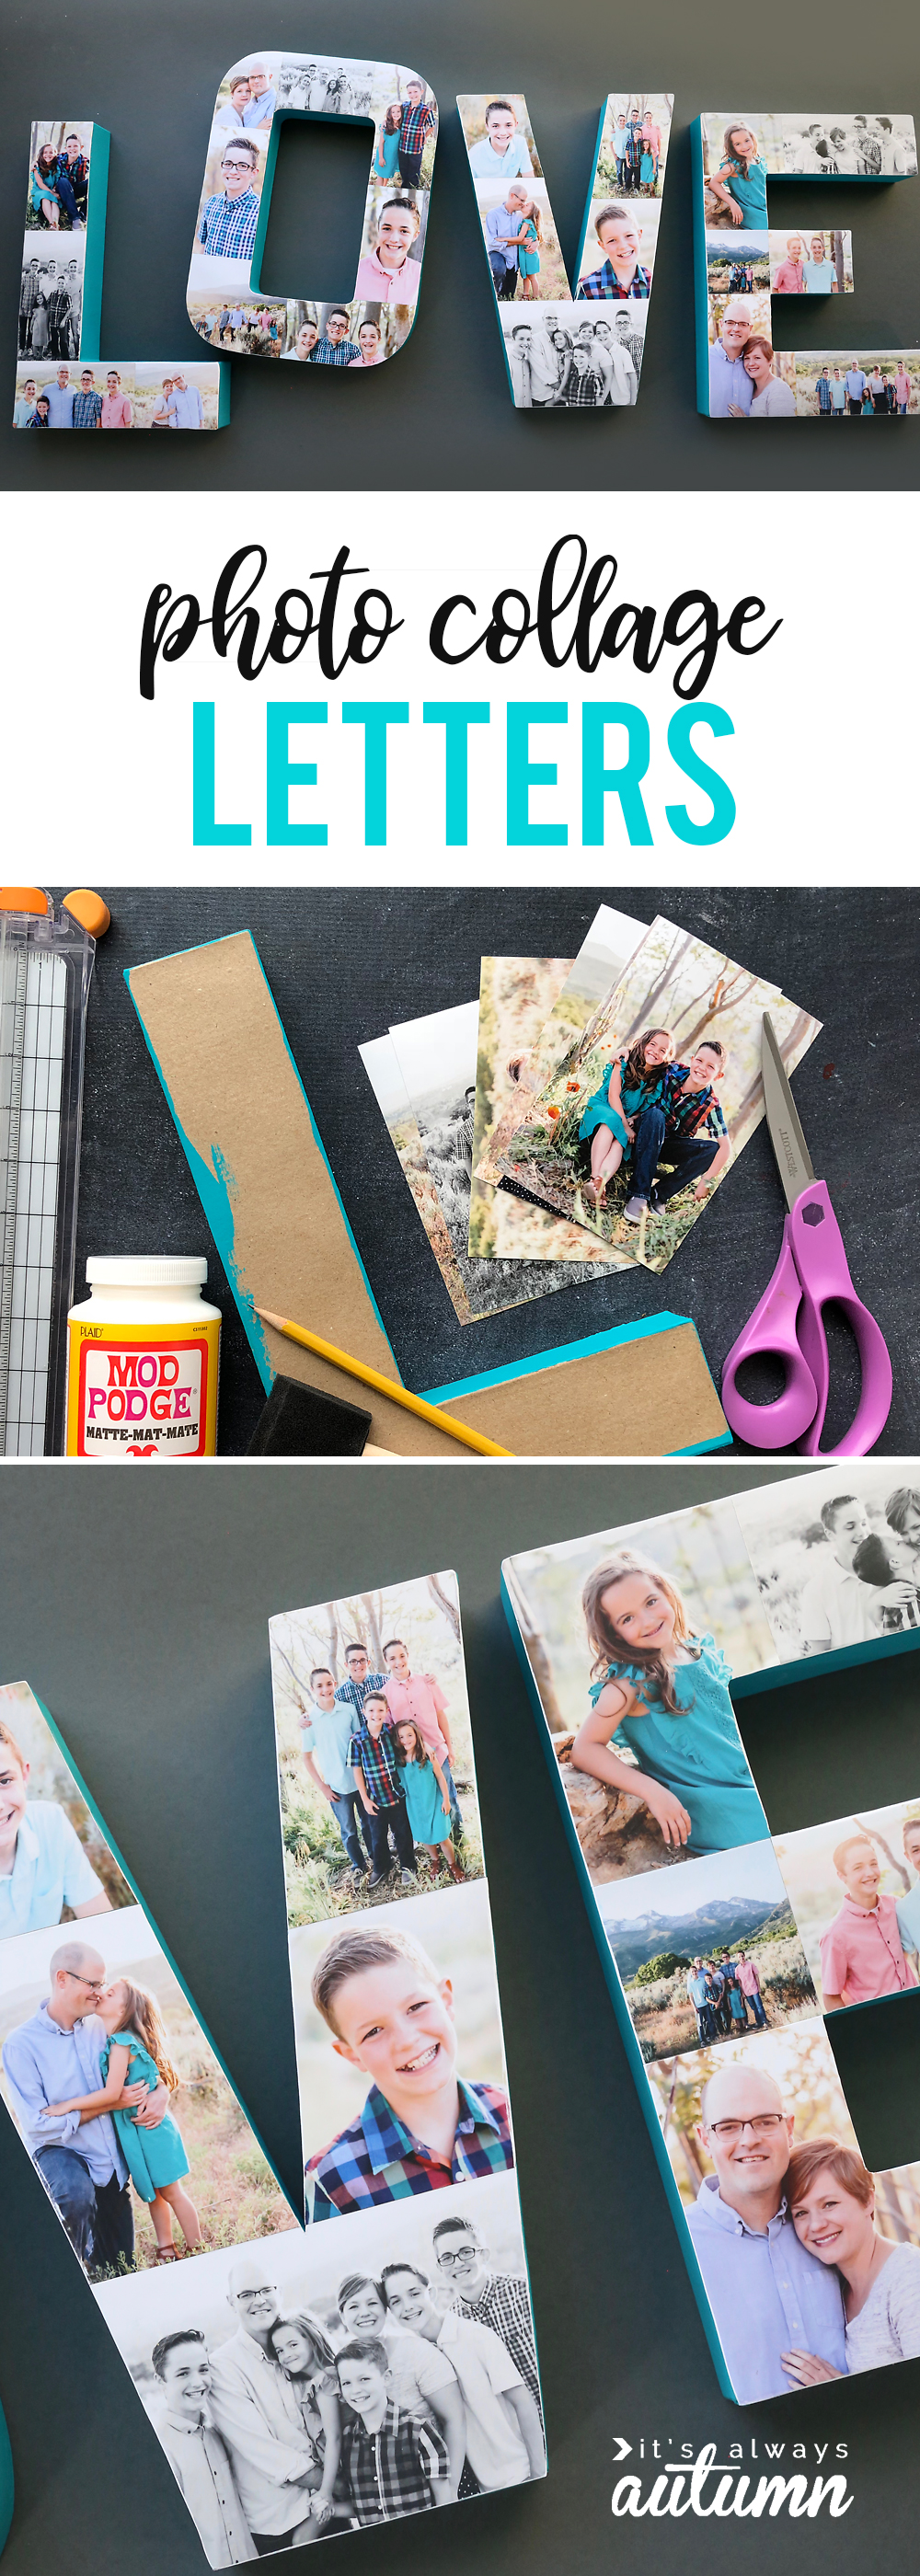 Paper mache letters covered with photos using Mod Podge